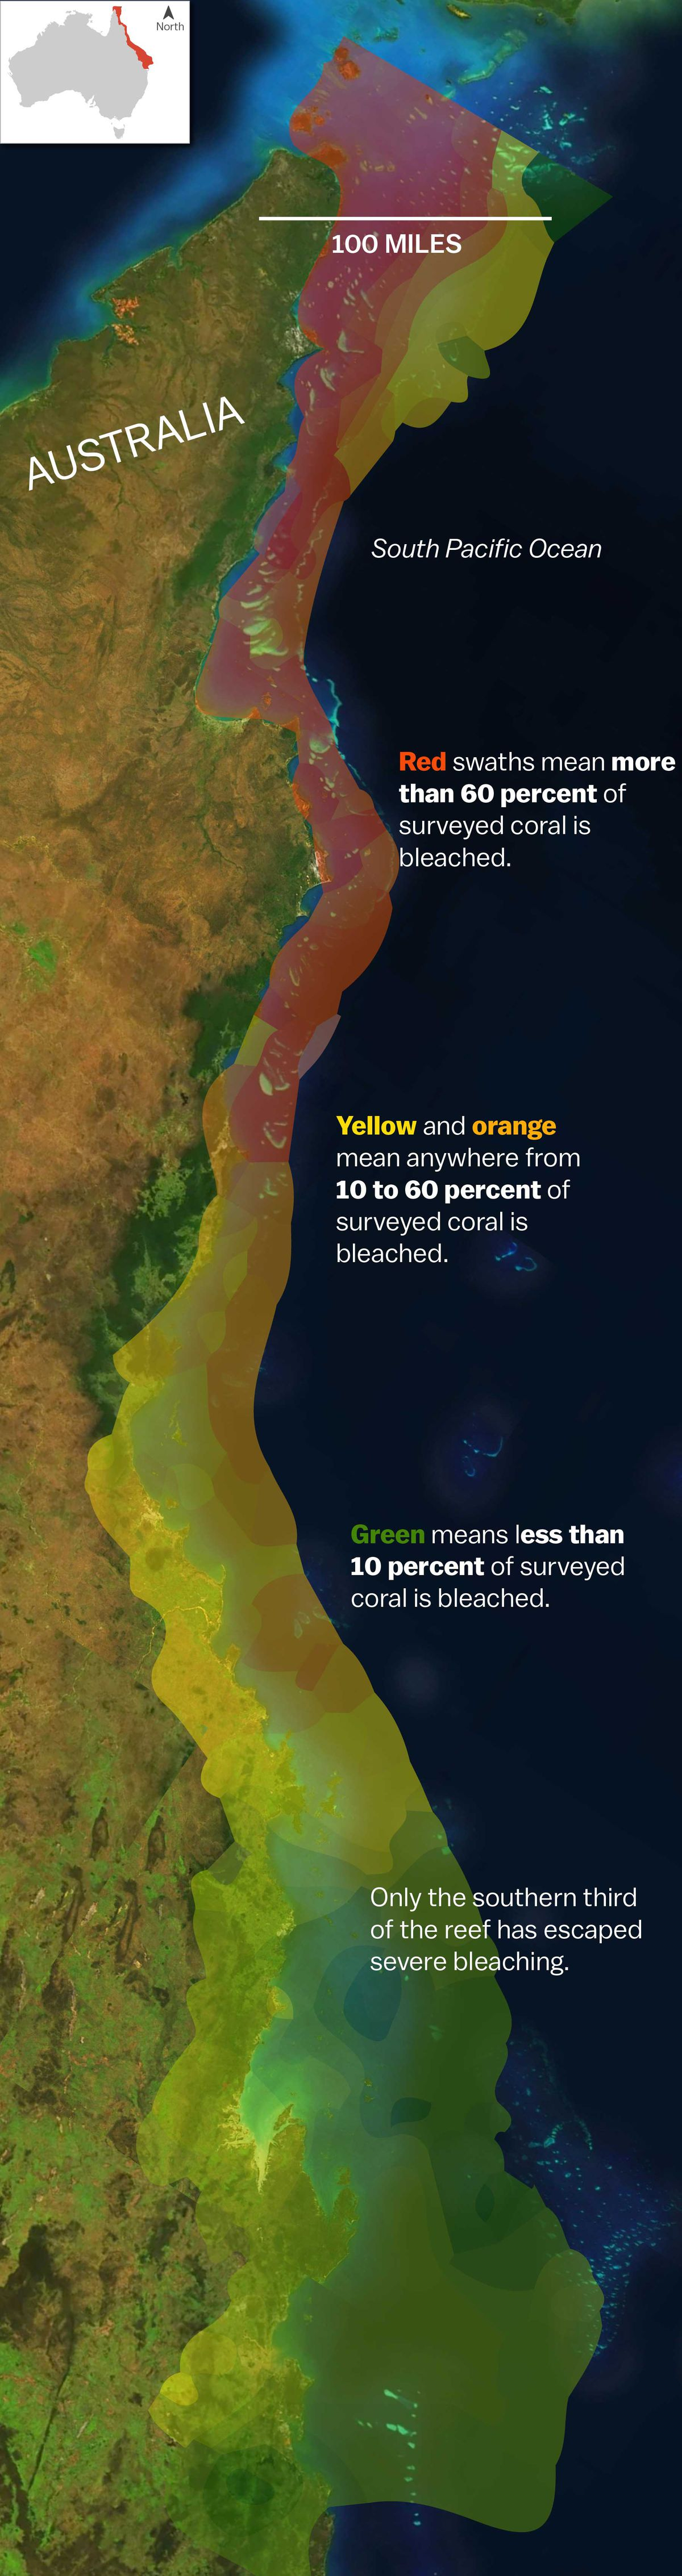 Barrier Reef Australia Map.Experts The Great Barrier Reef Cannot Be Saved Vox